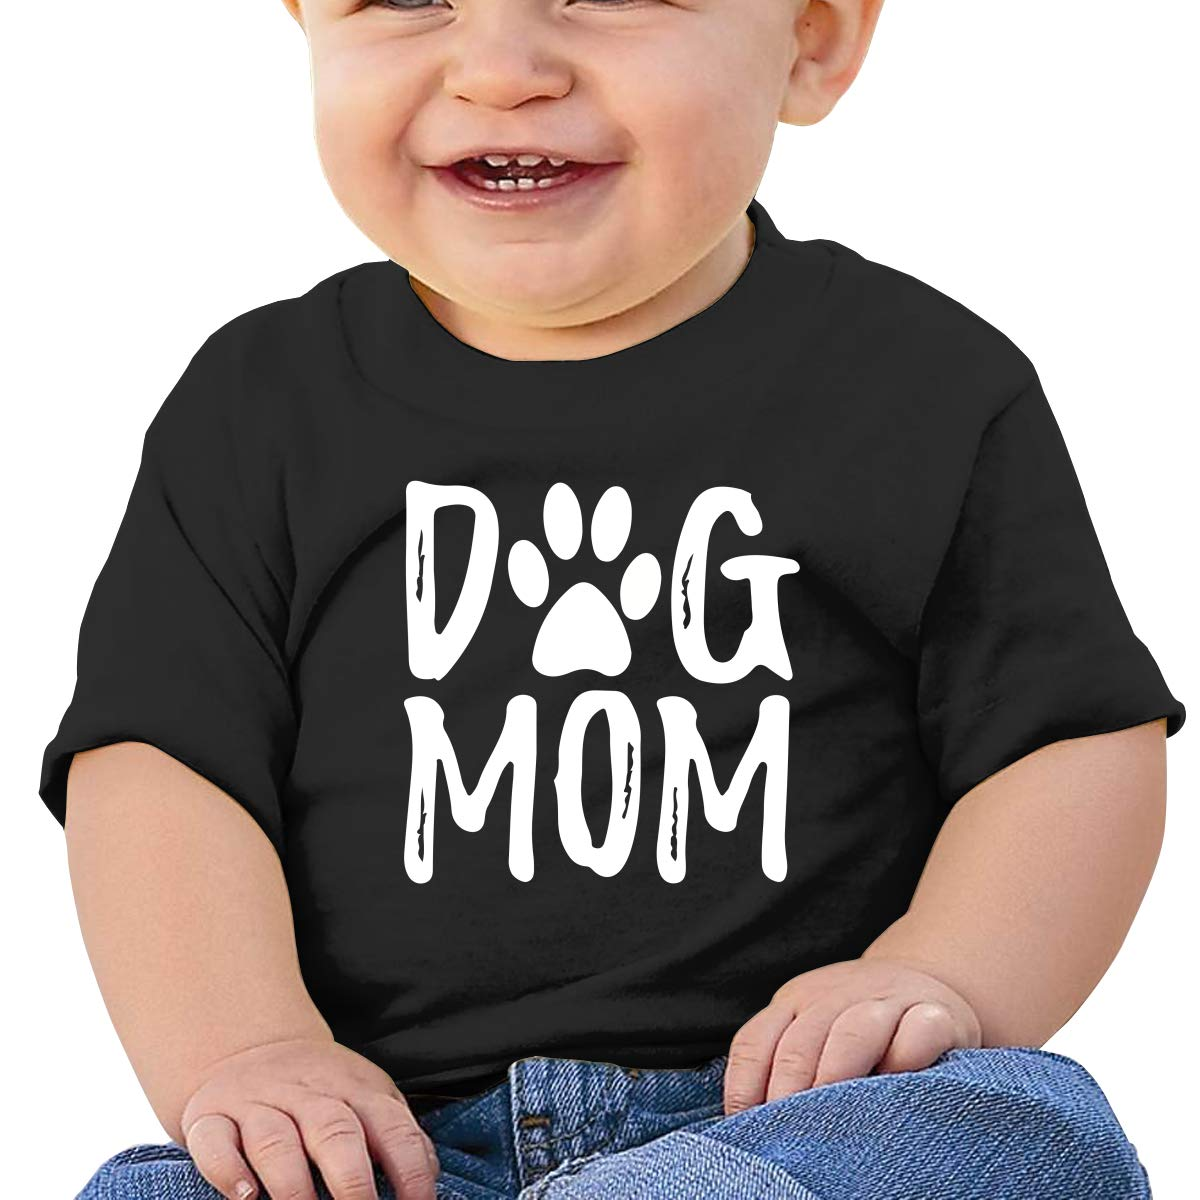 Dog MOM Letter Toddler Short-Sleeve Tee for Boy Girl Infant Kids T-Shirt On Newborn 6-18 Months